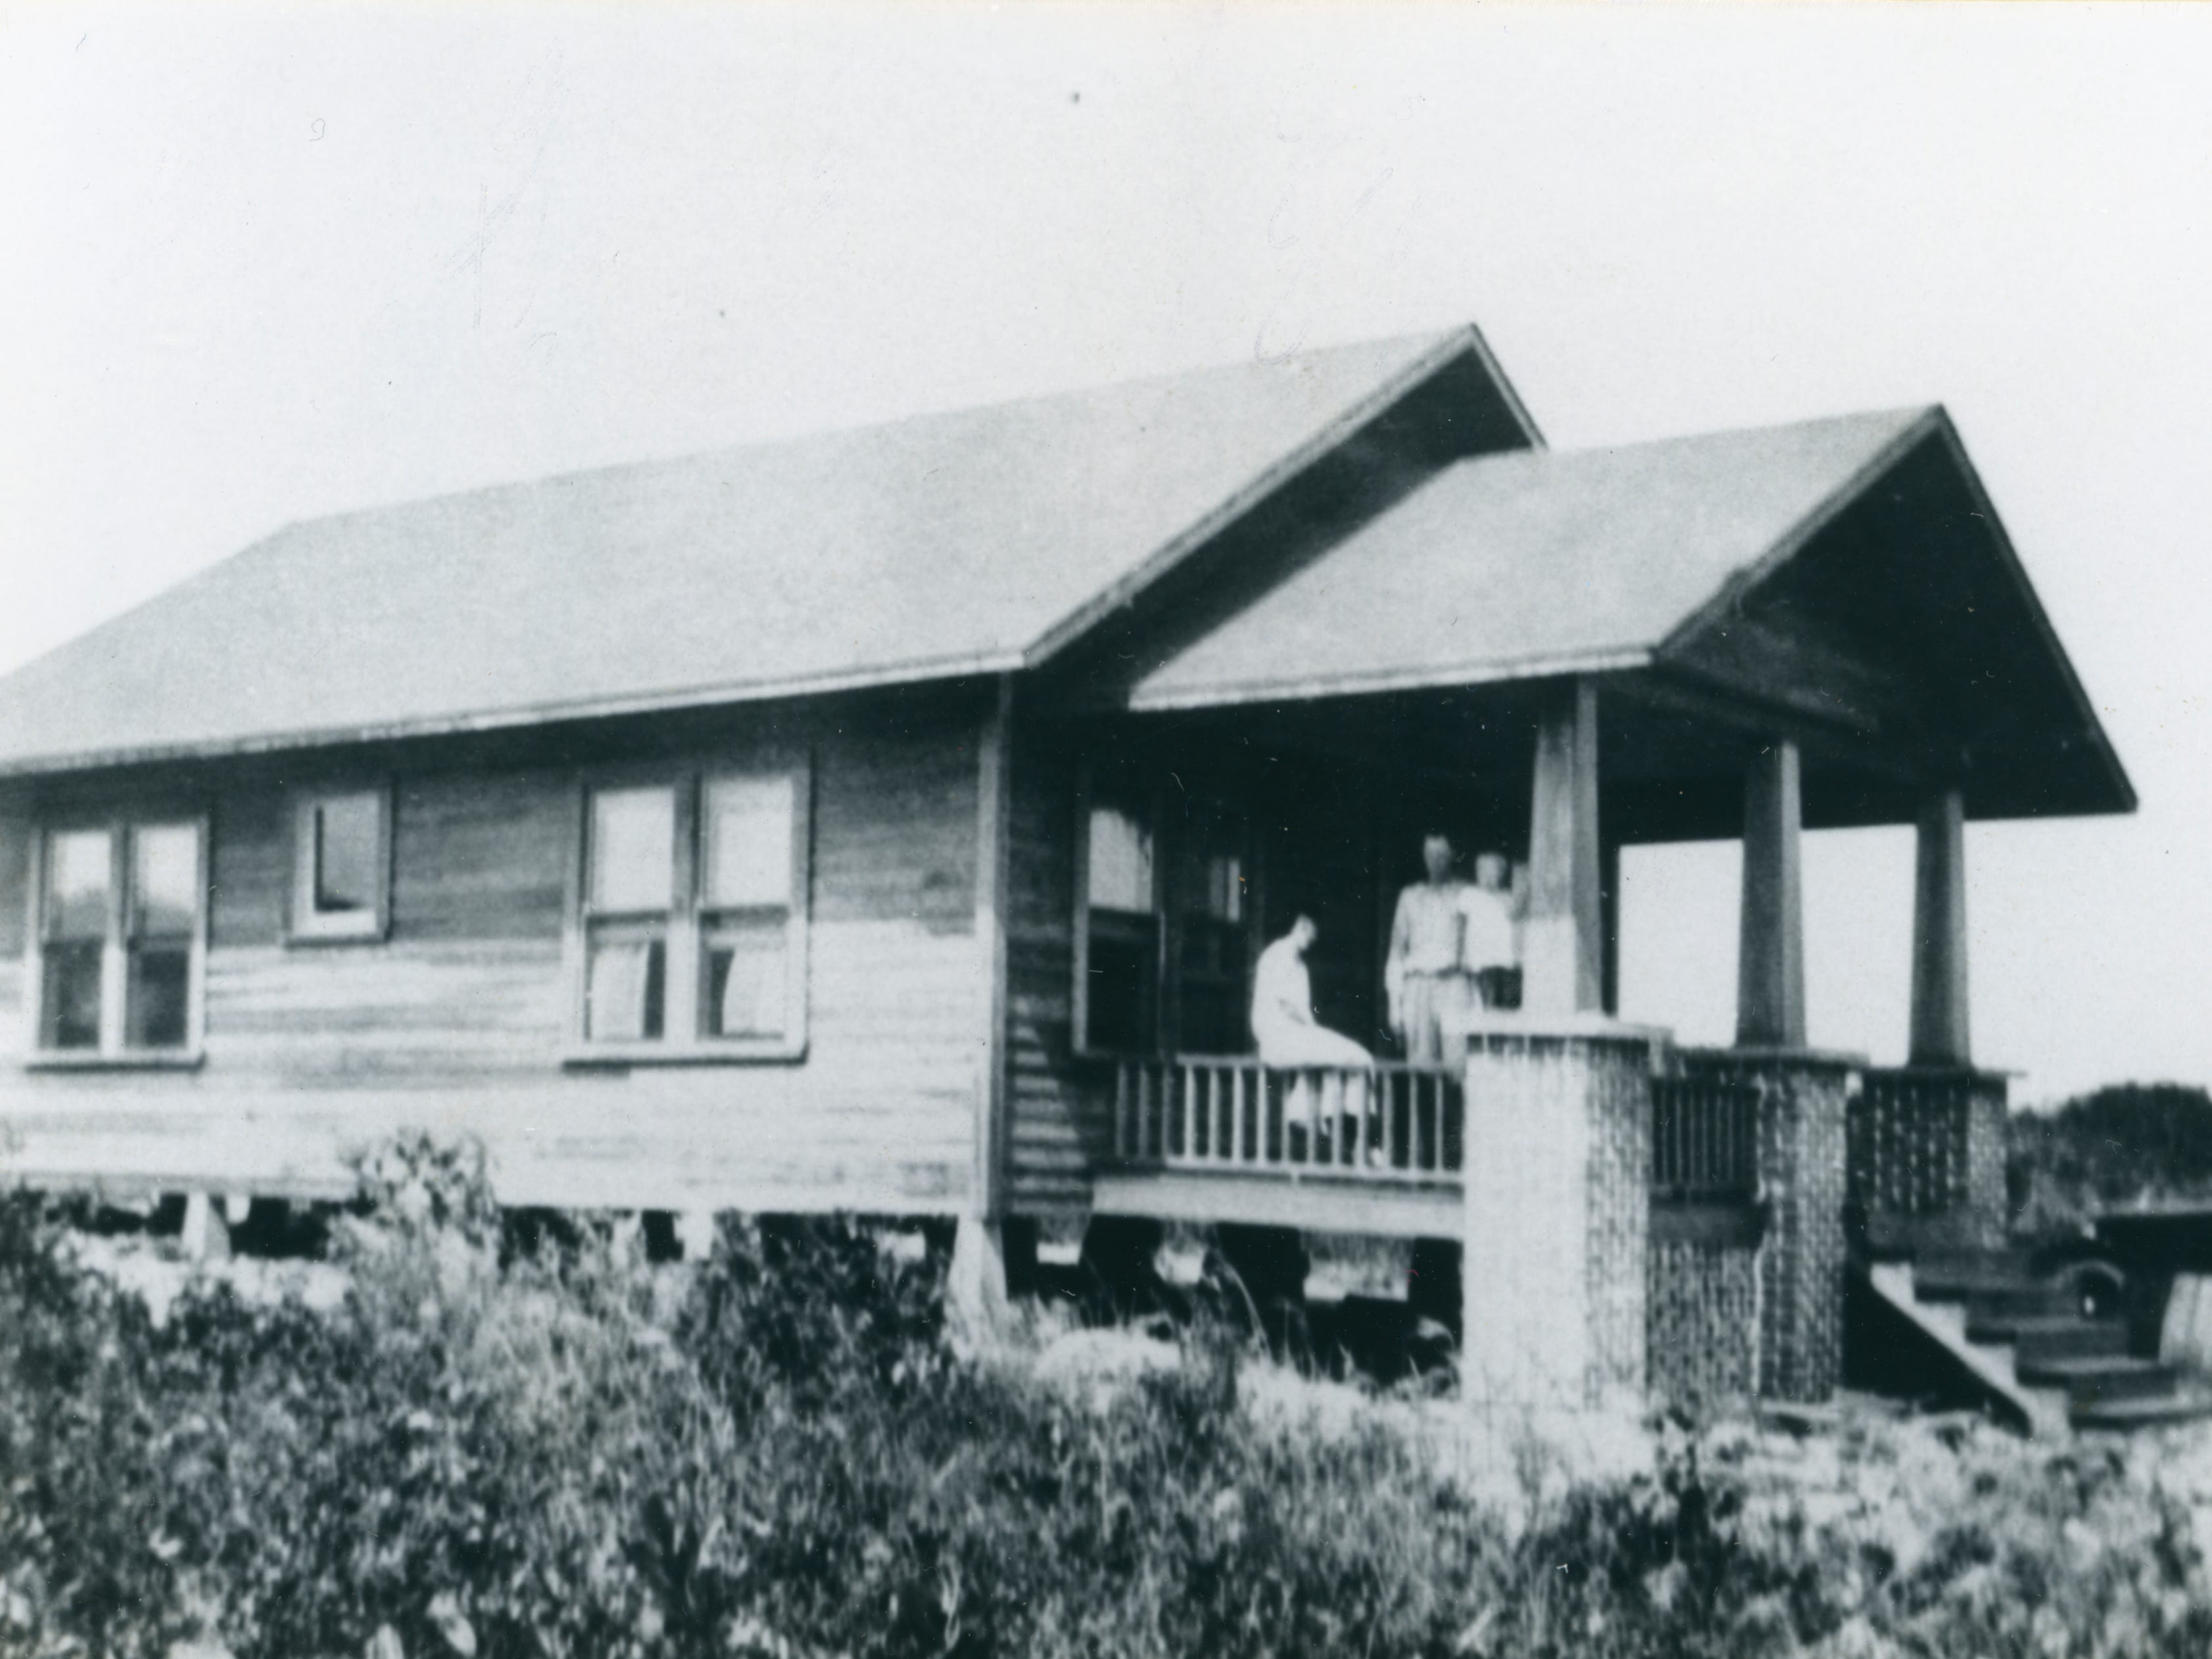 Helen Kroegel Ryall and N.B. Ryan Sr. Pictured in 1919 in their Florida cracker house along the Sebastian riverfront, built for the couple by her father, Arthur Kroegel.